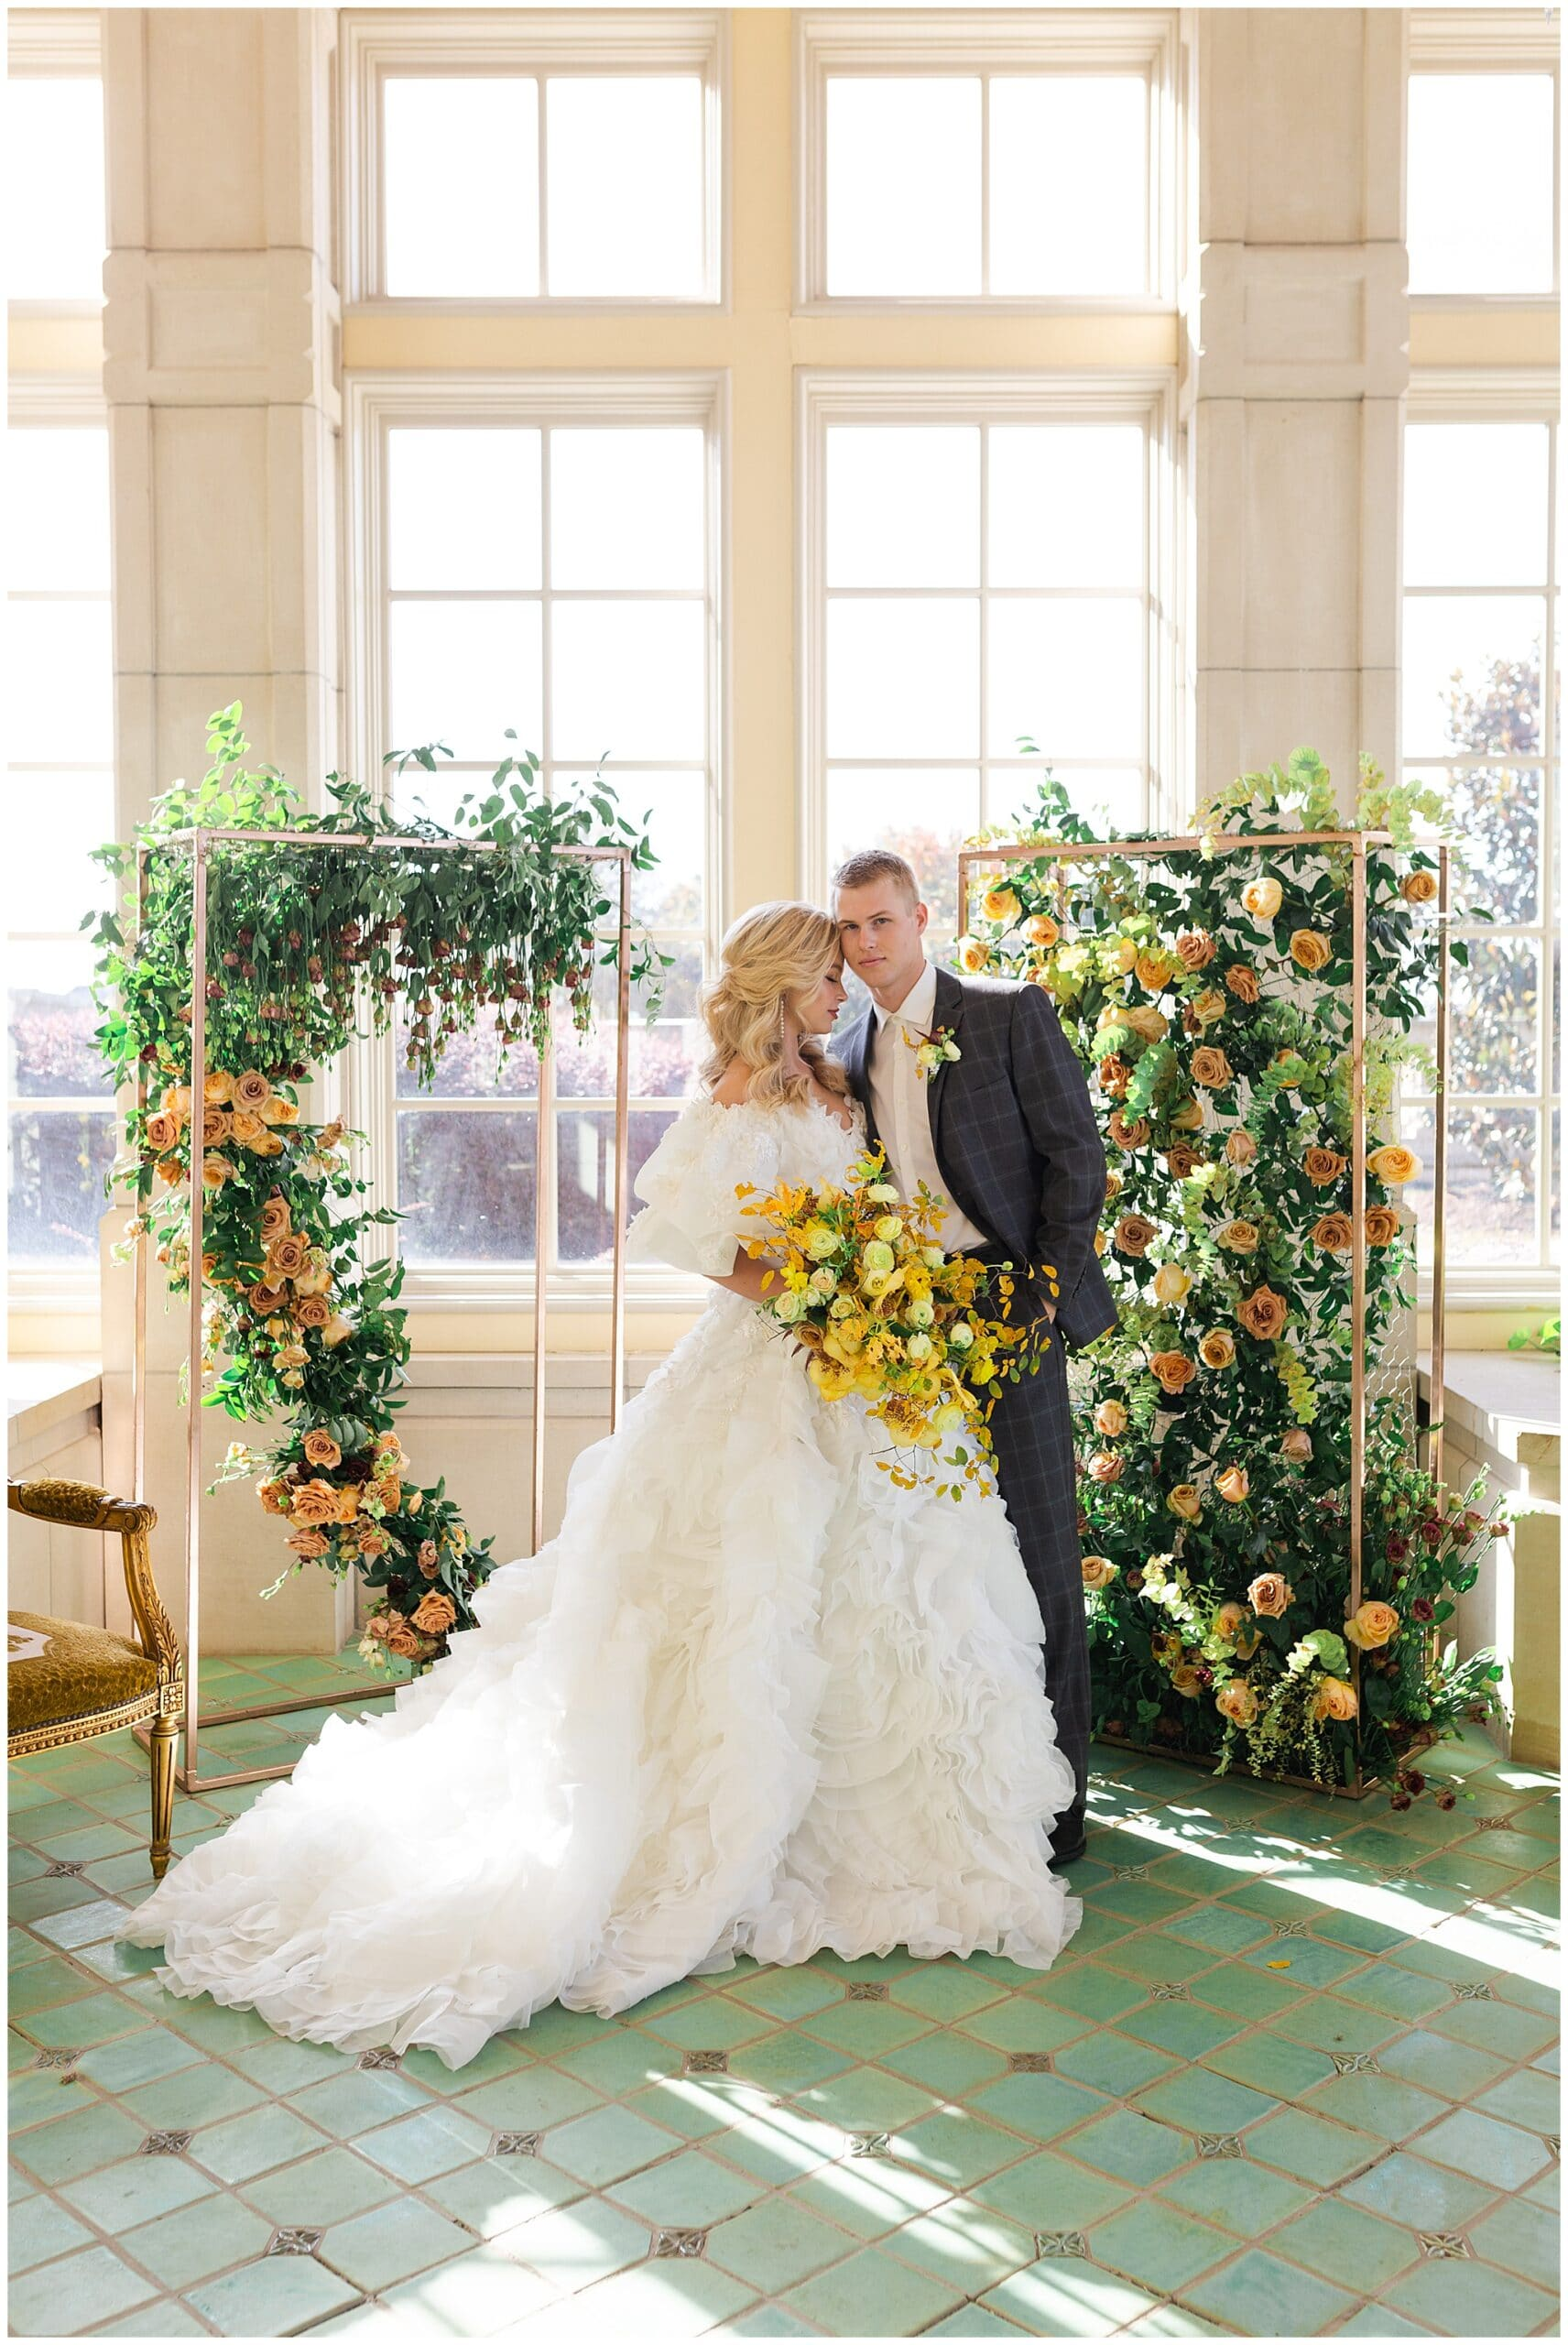 How to Incorporate Yellow into your Wedding in a Bougie Way